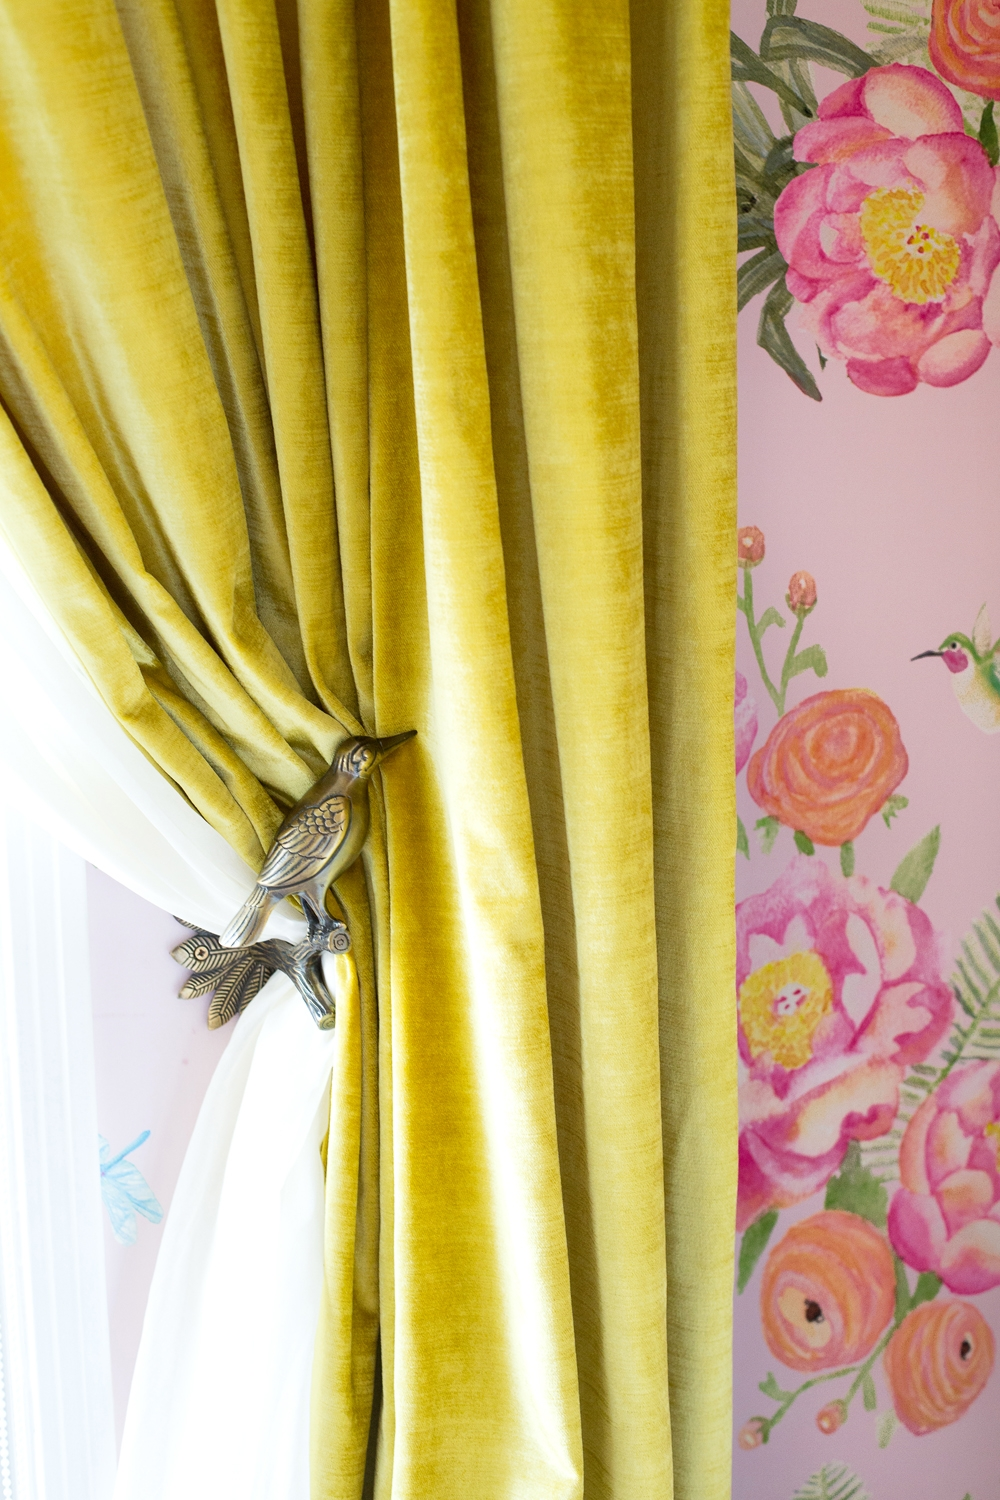 West Hollywood Glam Nursery Ginny Macdonald With Regard To Yellow Velvet Curtains (Image 15 of 15)